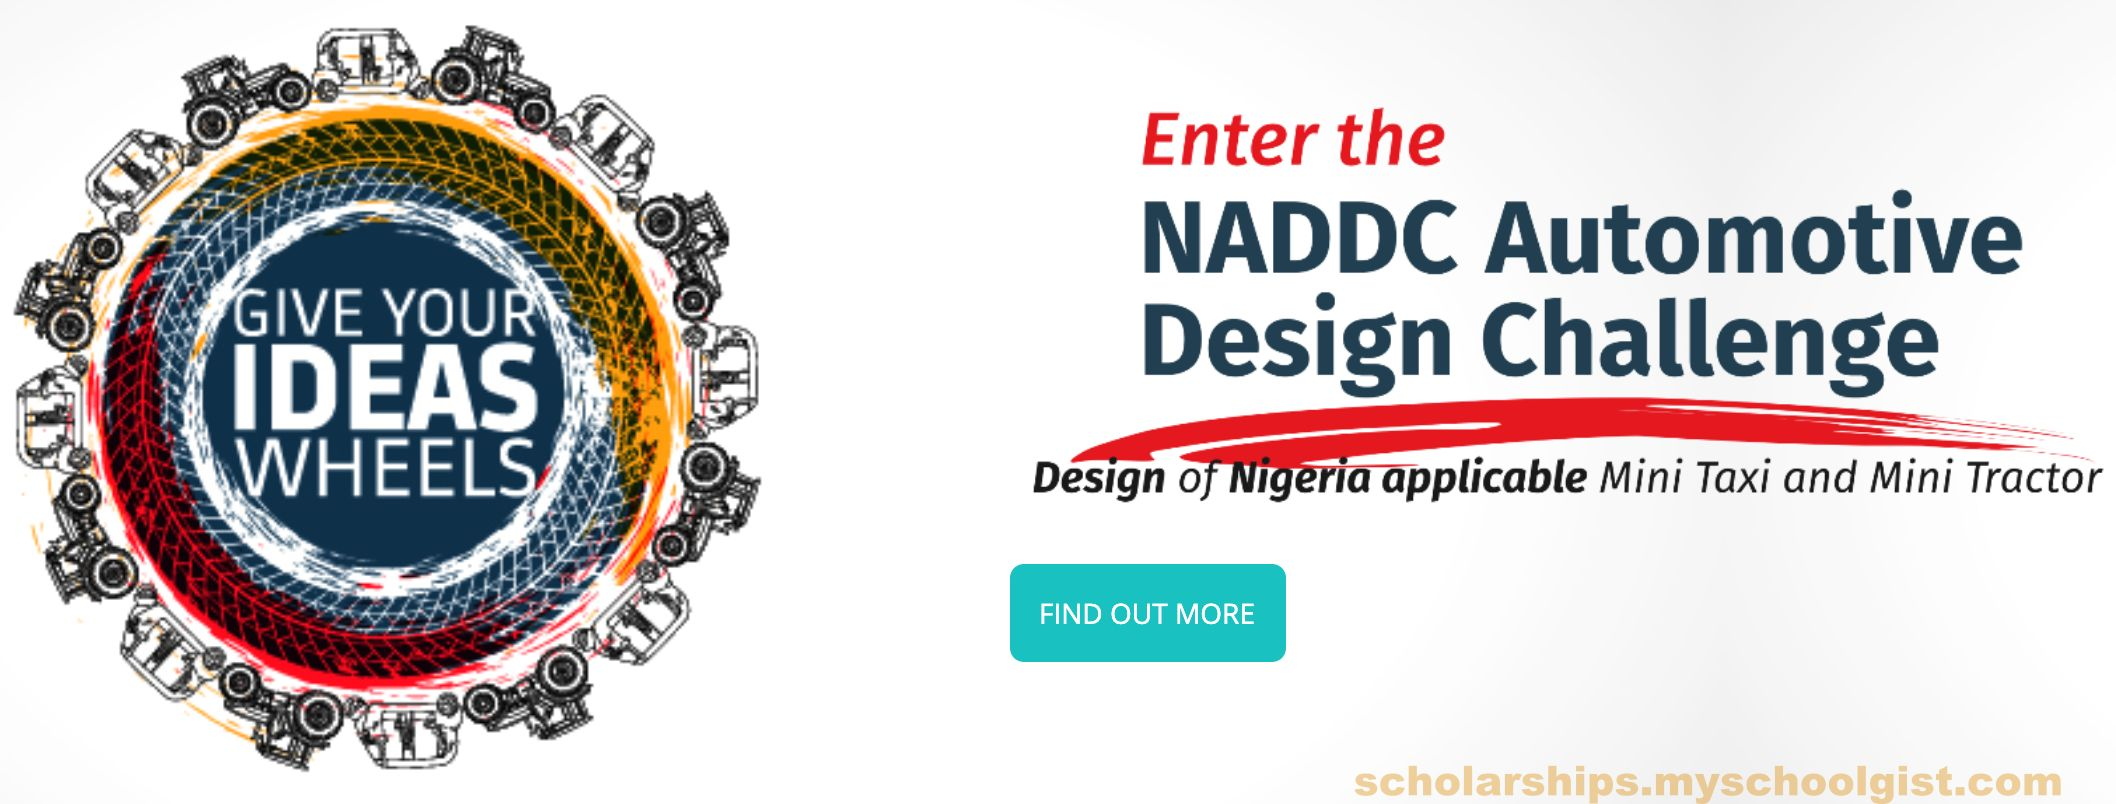 NADDC Automotive Design Challenge